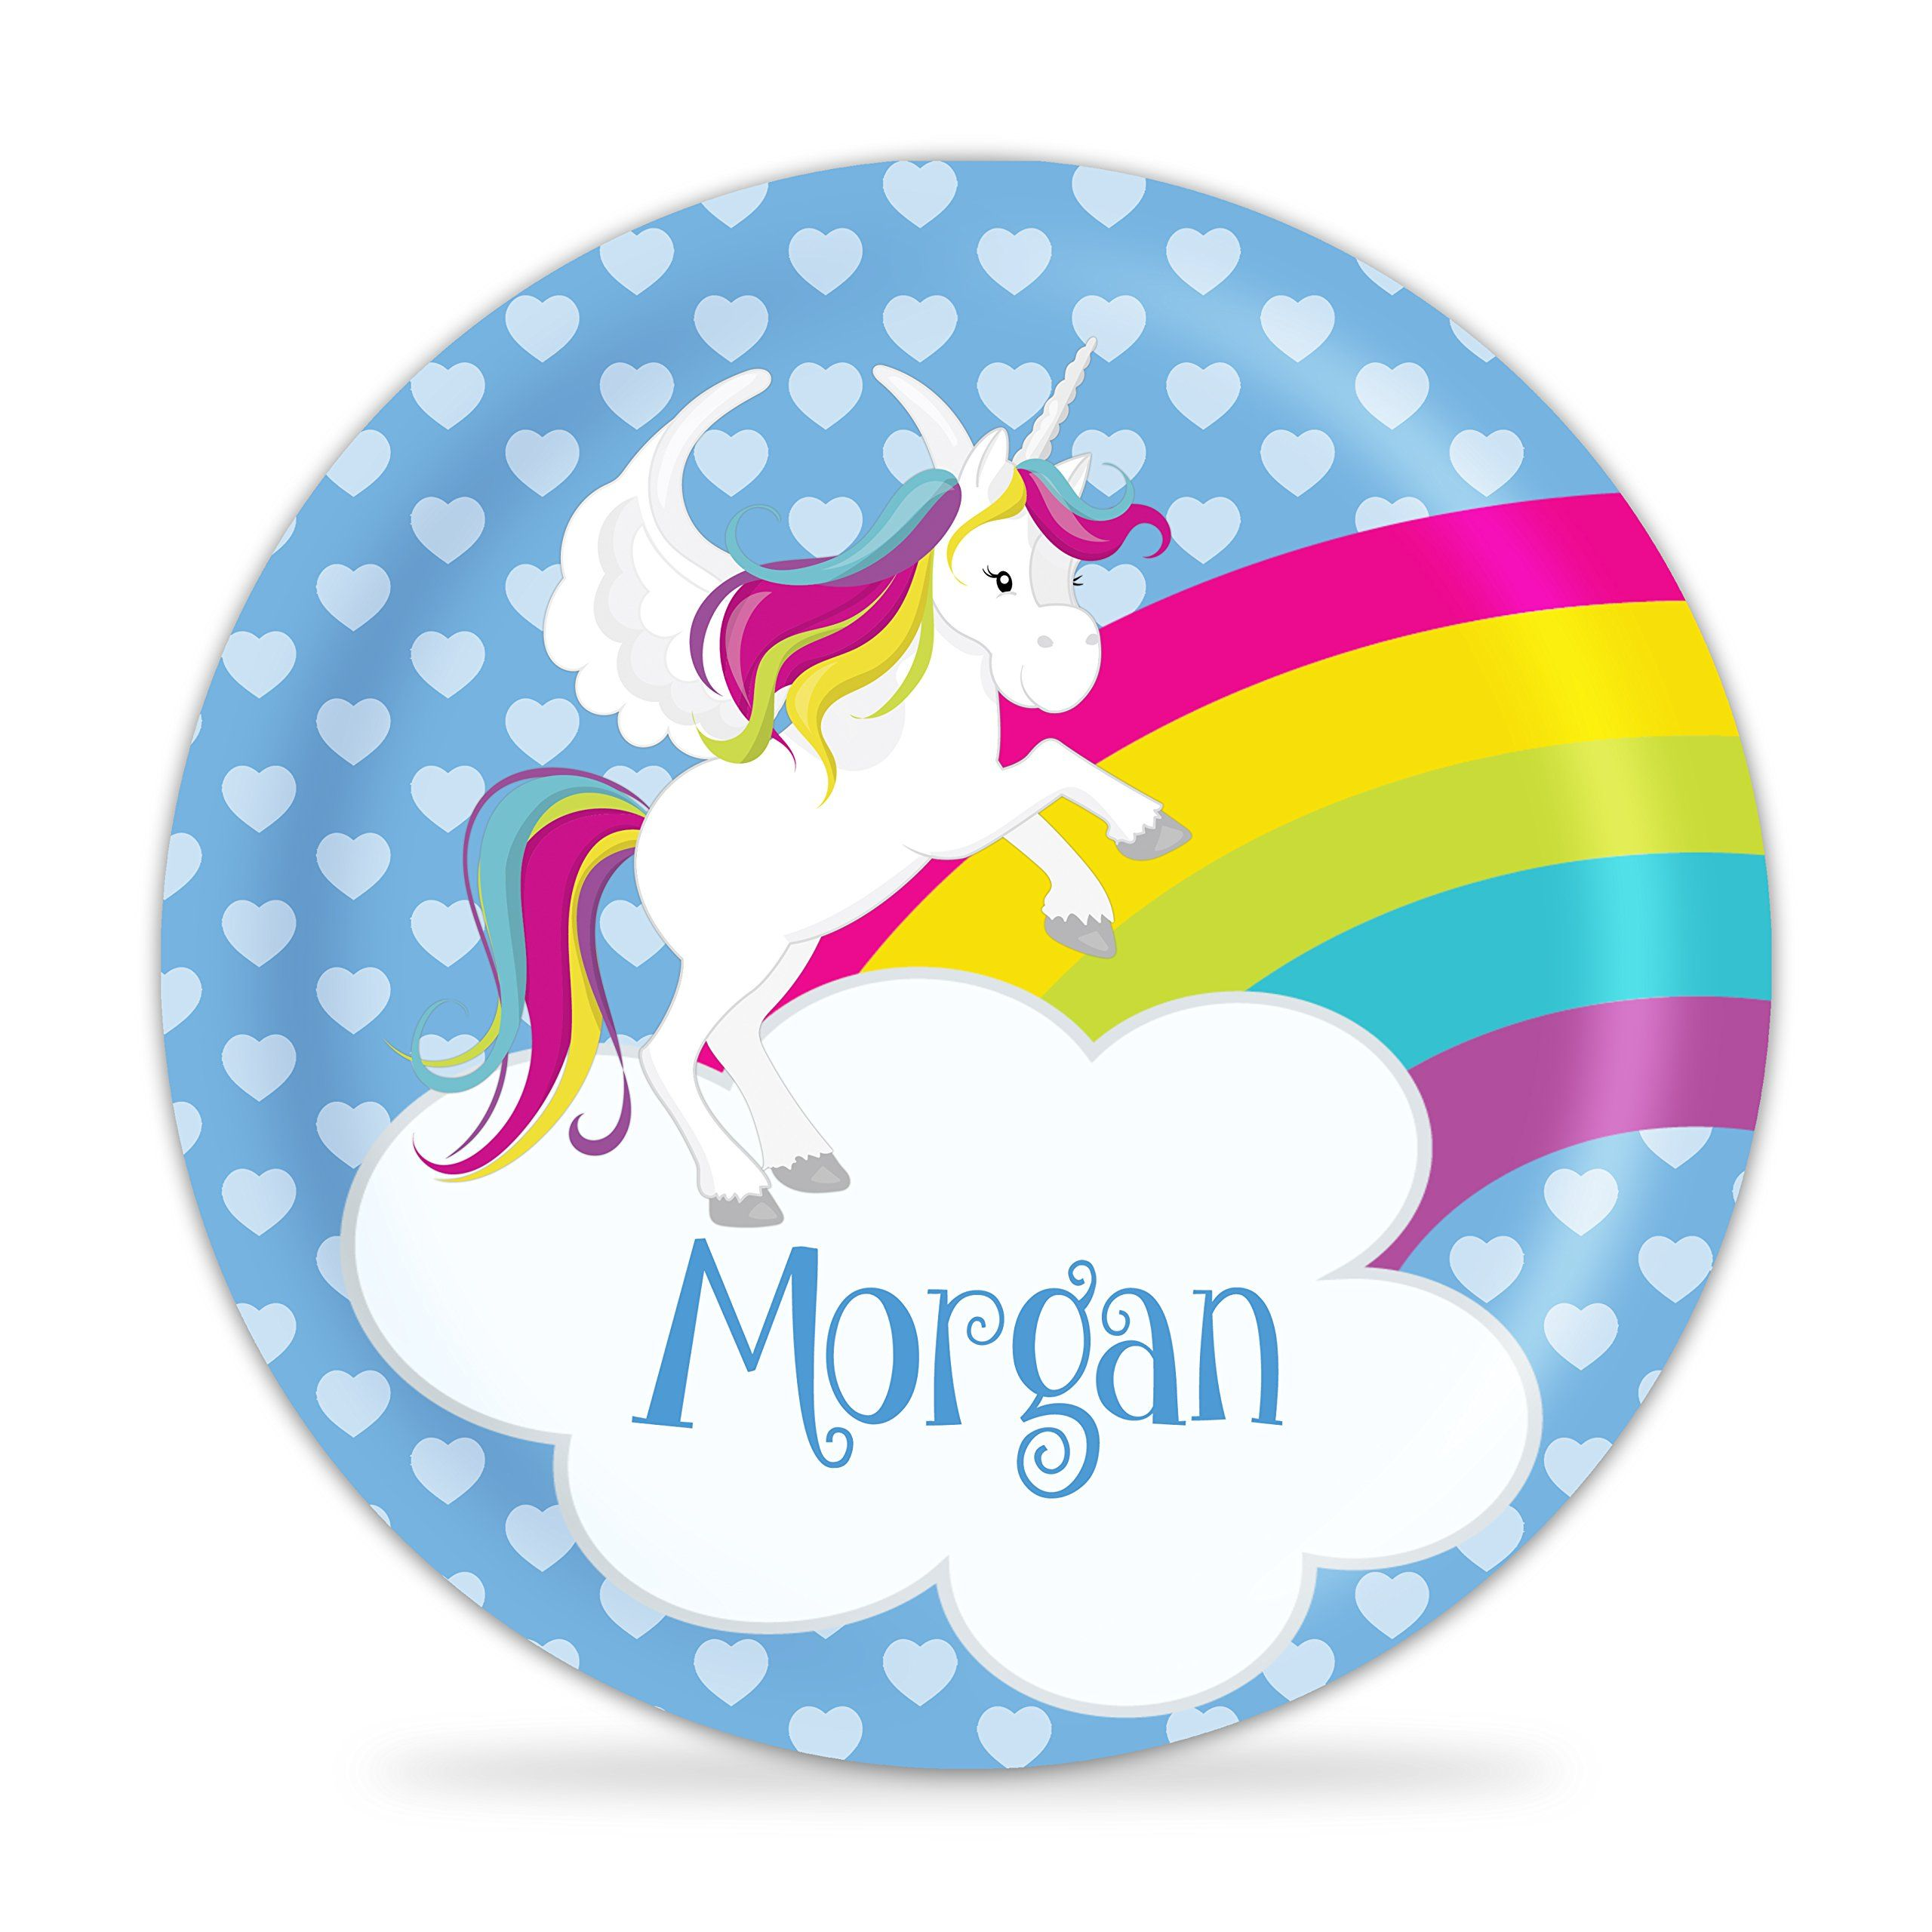 Unicorn Plate - Rainbow Unicorn Melamine Personalized Plate. 1 Personalized Melamine Plate - makes a Great Kids Gift ~ I Design and Customize ...  sc 1 st  Pinterest : melamine personalized plates - pezcame.com